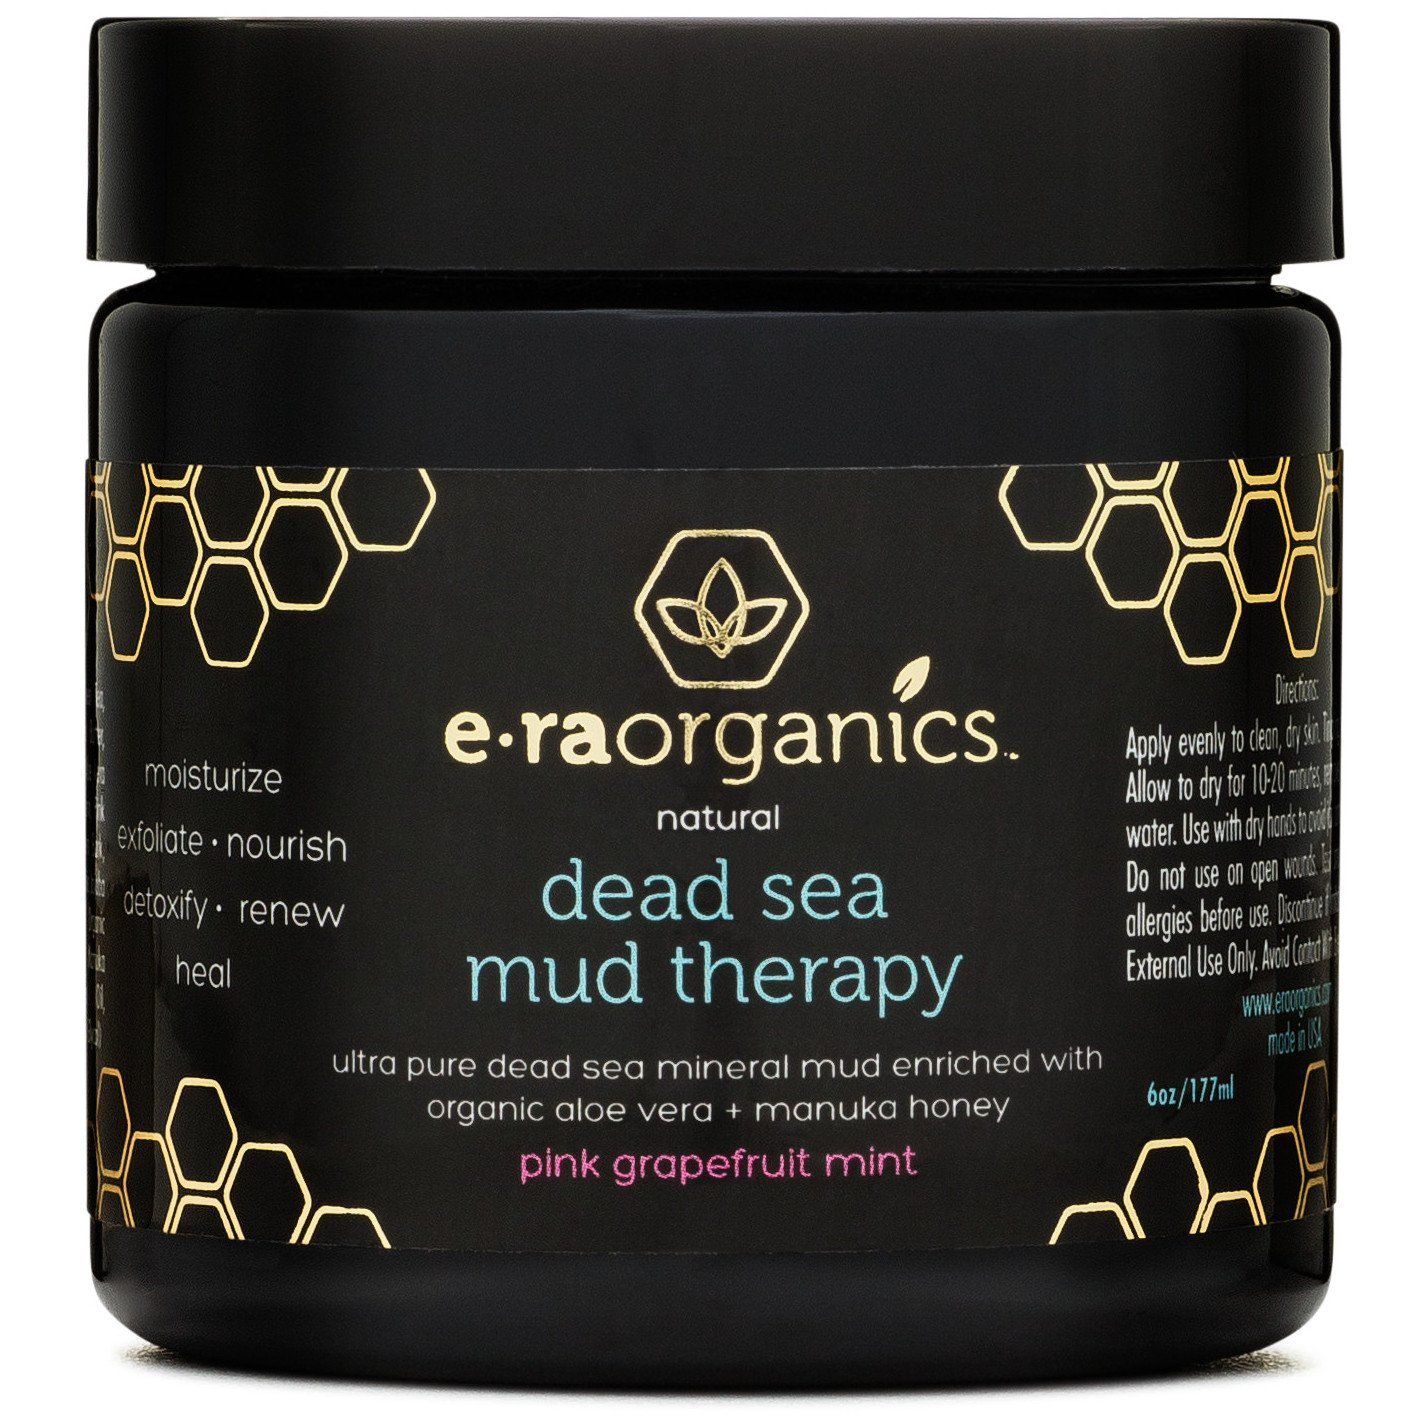 Dead Sea Mud Mask with Organic Aloe Vera, Shea Butter, Manuka Honey & Hemp Oil (6oz) Spa Quality Face Mask to Cleanse & Minimize Pores, Moisturize, Detoxify & Exfoliate (In Pink Grapefruit Mint)